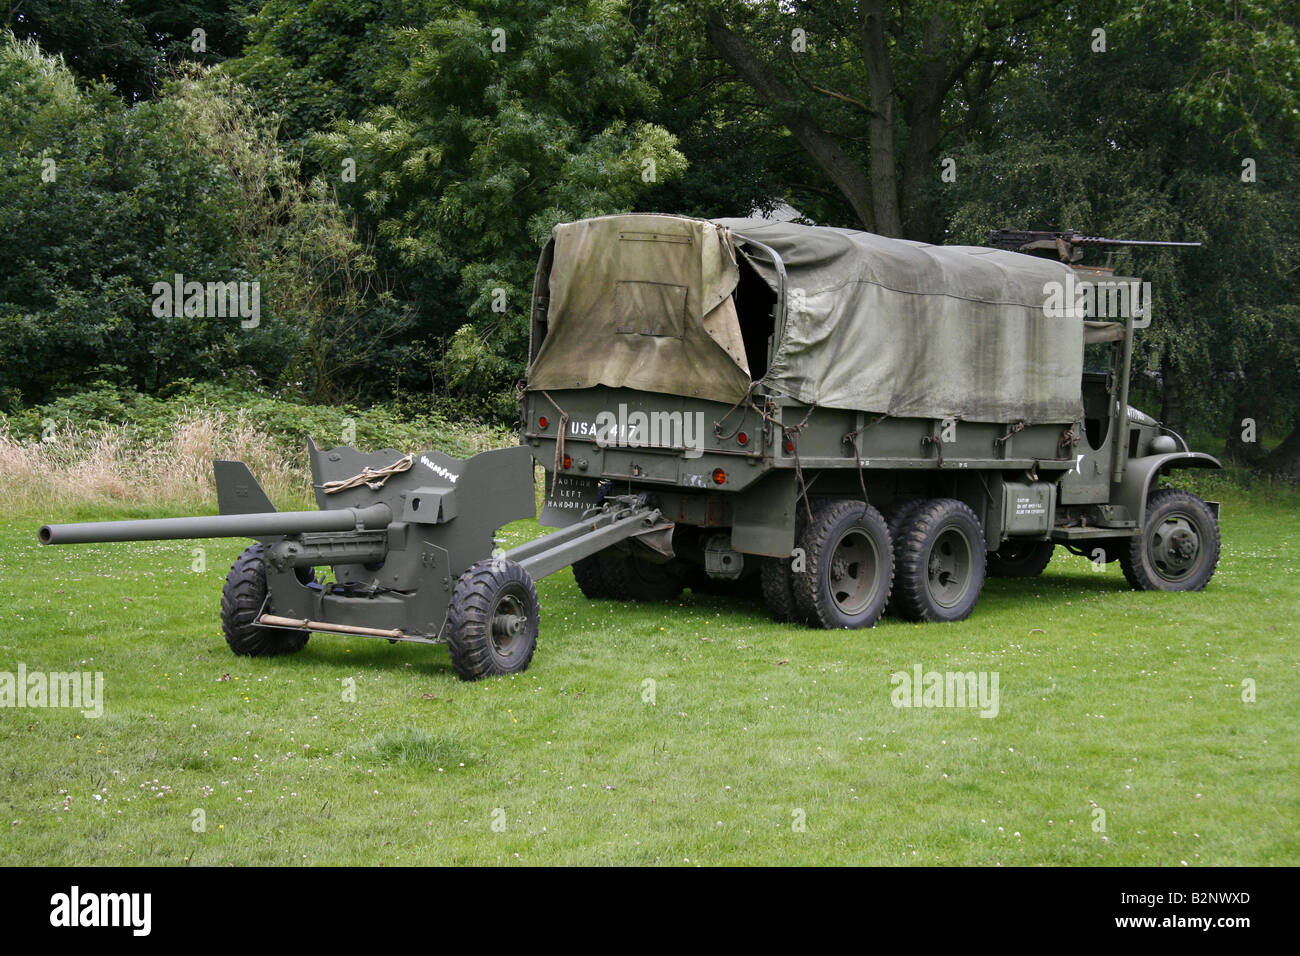 Dodge trucks in wwii - World War 2 Army Truck With Field Gun On The Back At A Show In